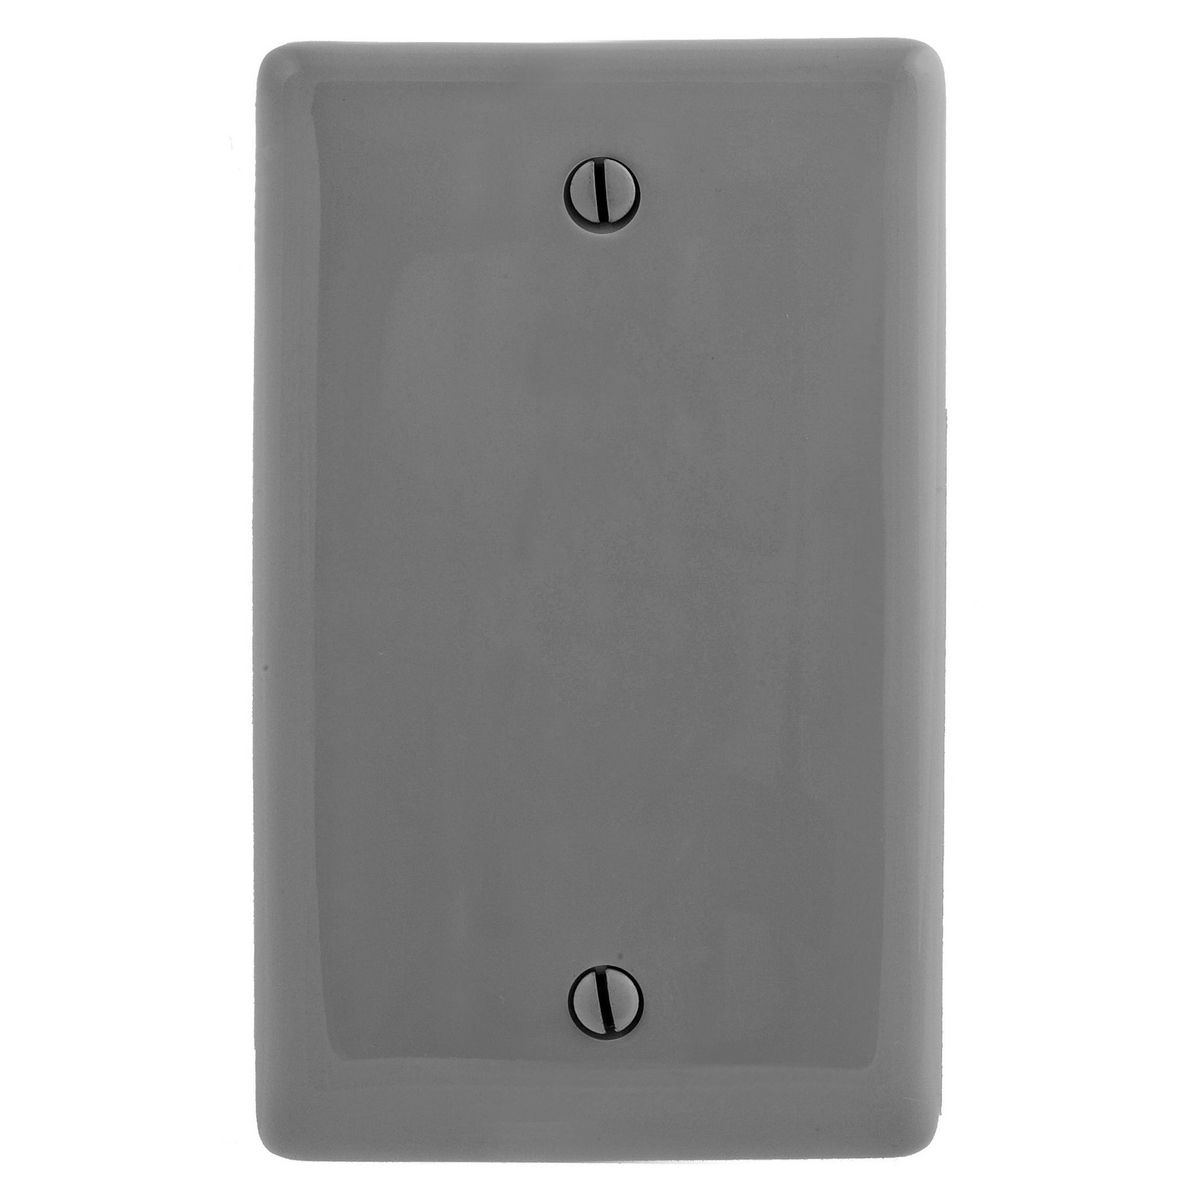 Hubbell NPJ13GY 1-Gang Box Mount Blank Mid-Size Wall Plate